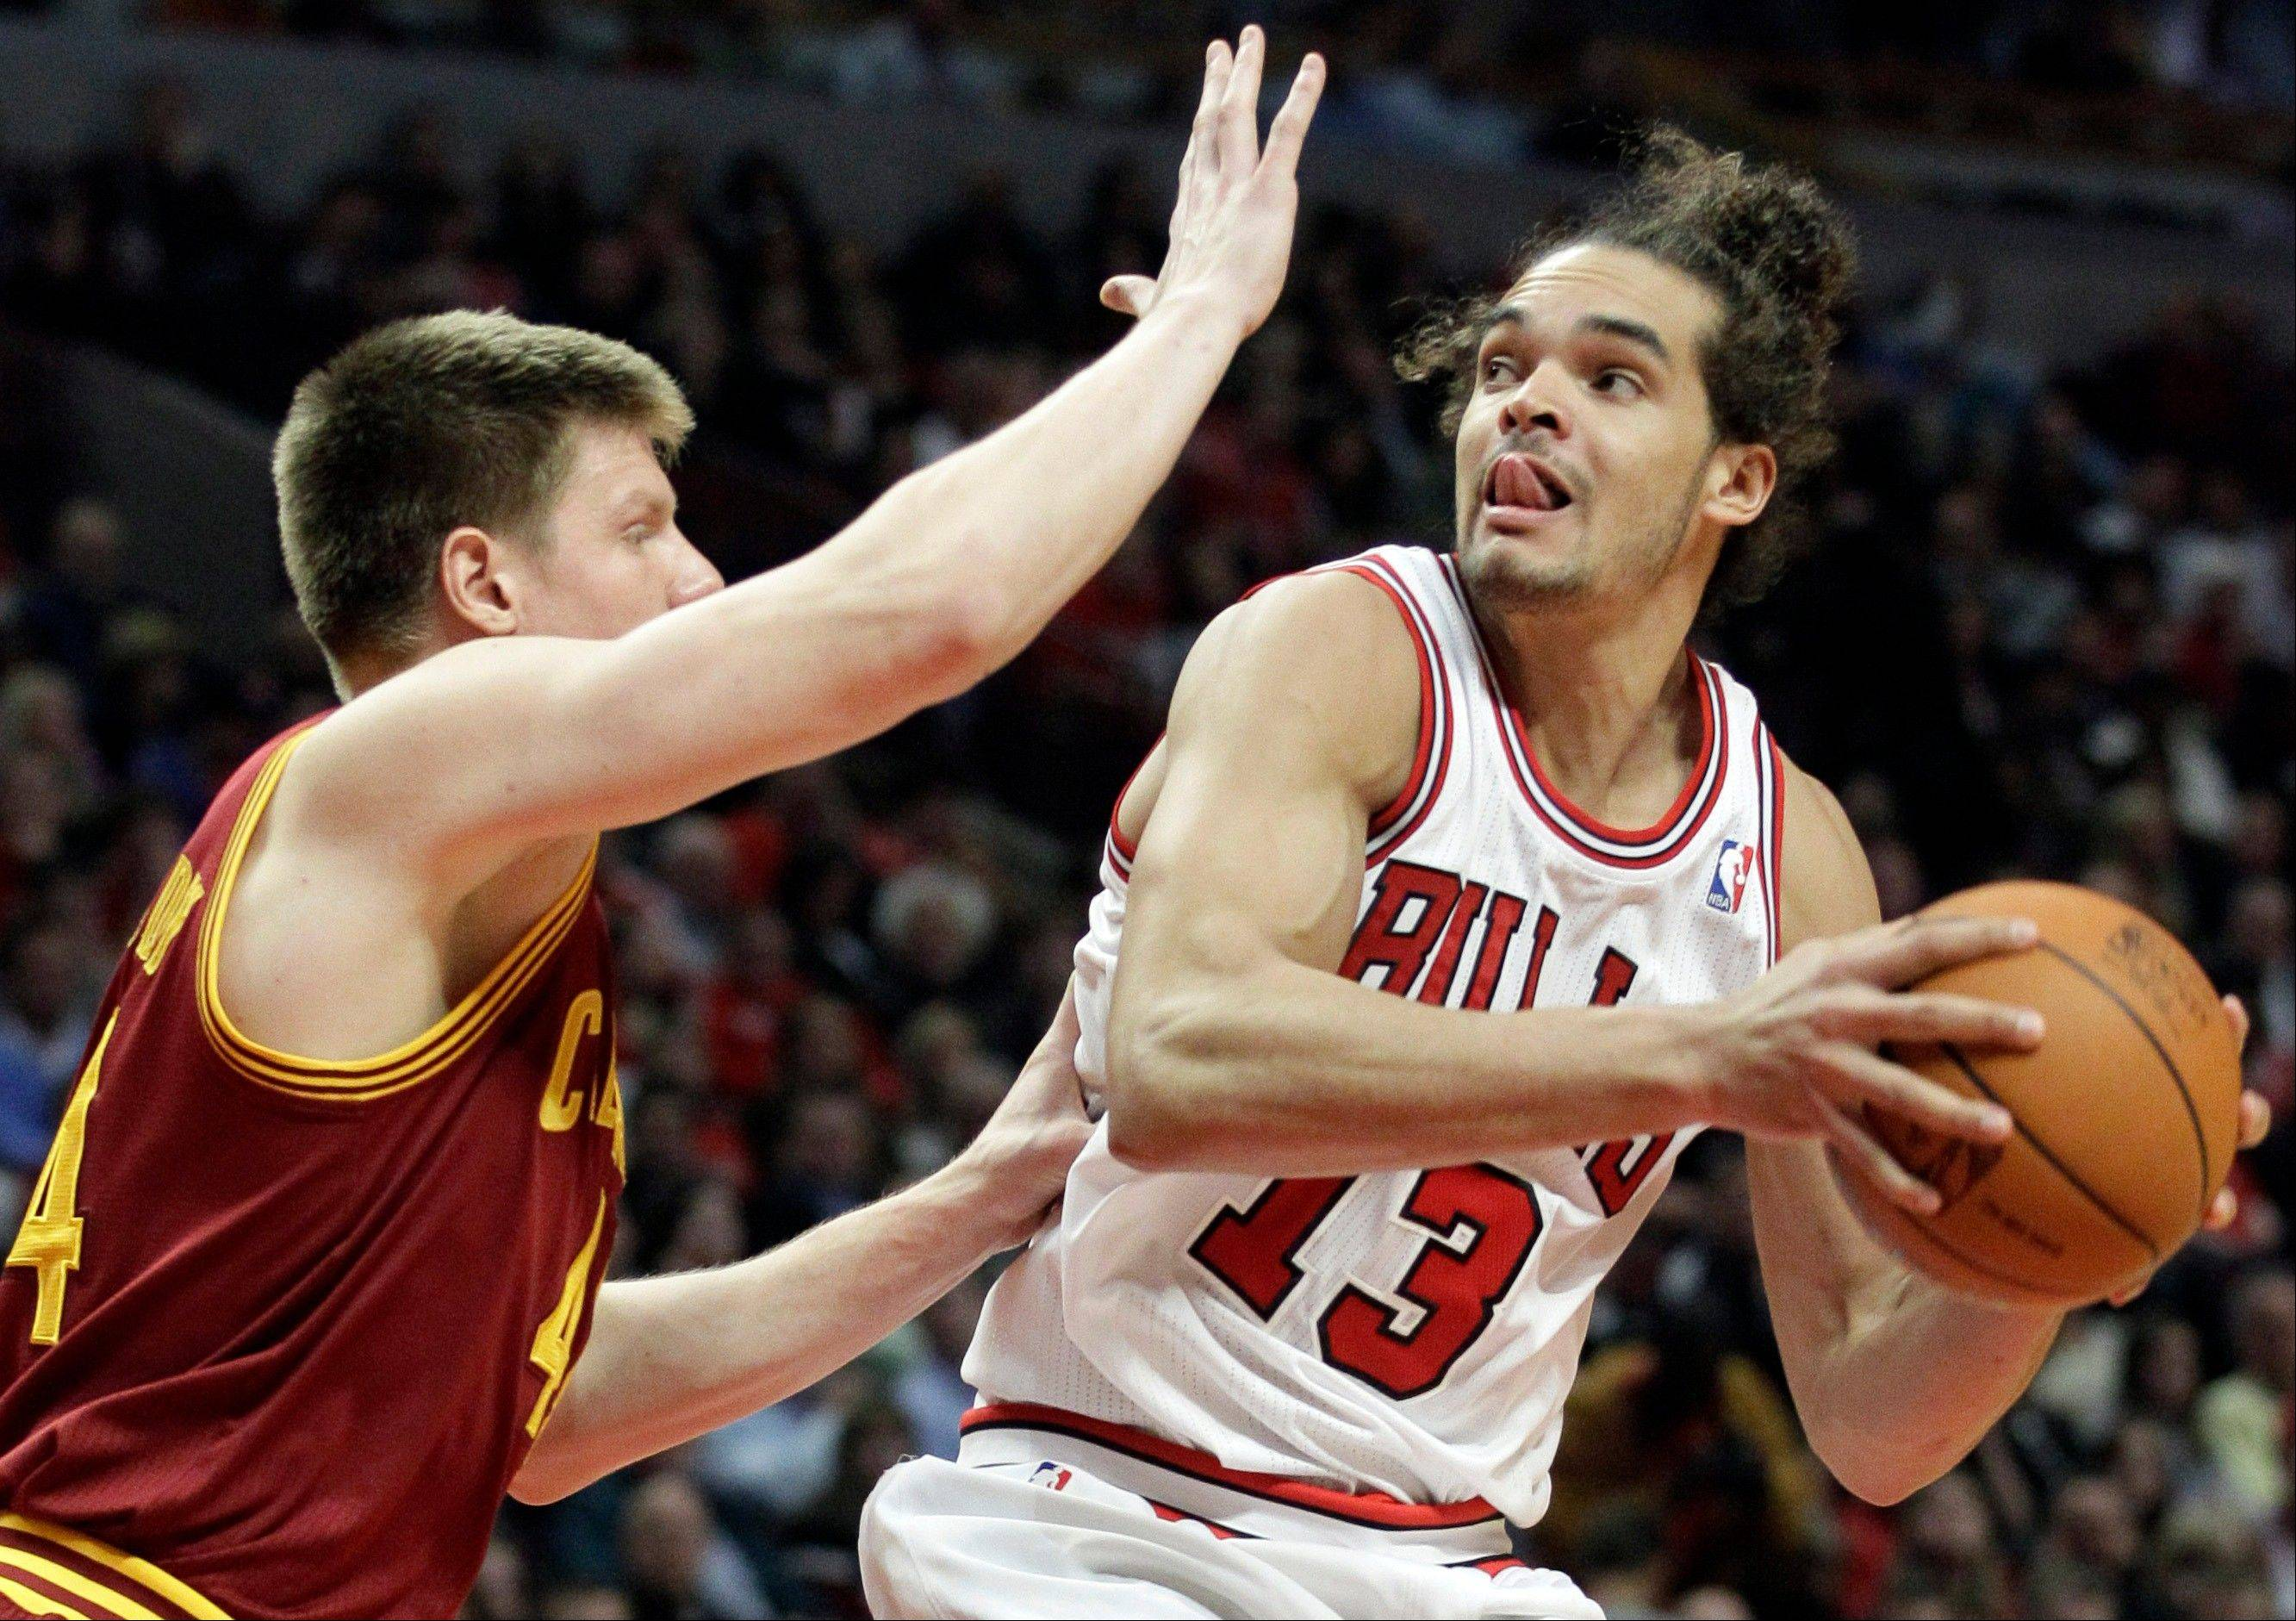 Chicago Bulls center Joakim Noah (13) looks to the basket as Cleveland Cavaliers forward Luke Harangody (44) guards during the second half of an NBA basketball game in Chicago, Thursday, April 26, 2012. The Bulls won 107-75.